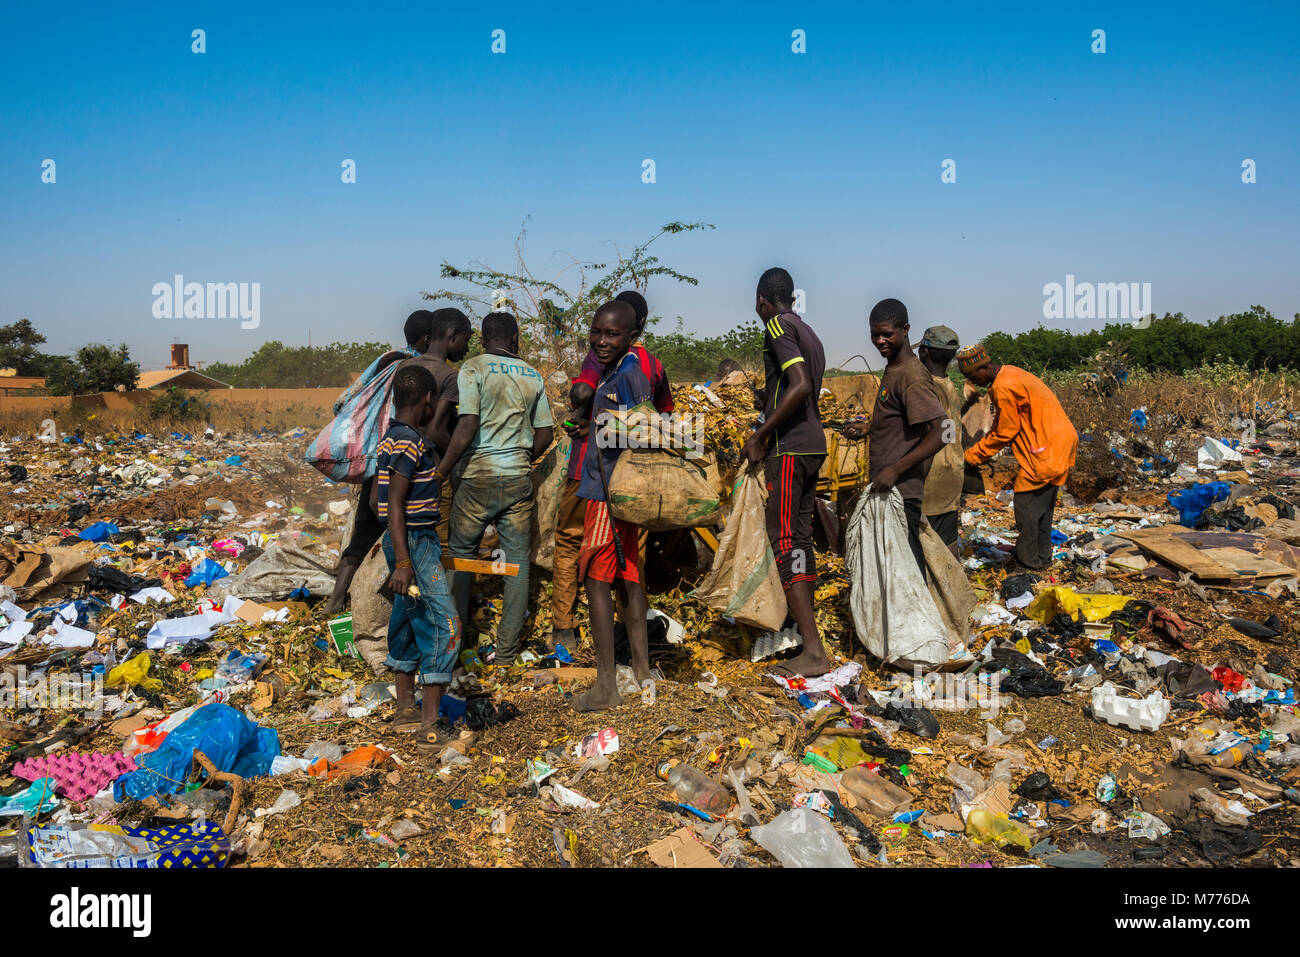 Local boys looking for valuables in the public rubbish dump, Niamey, Niger, Africa - Stock Image